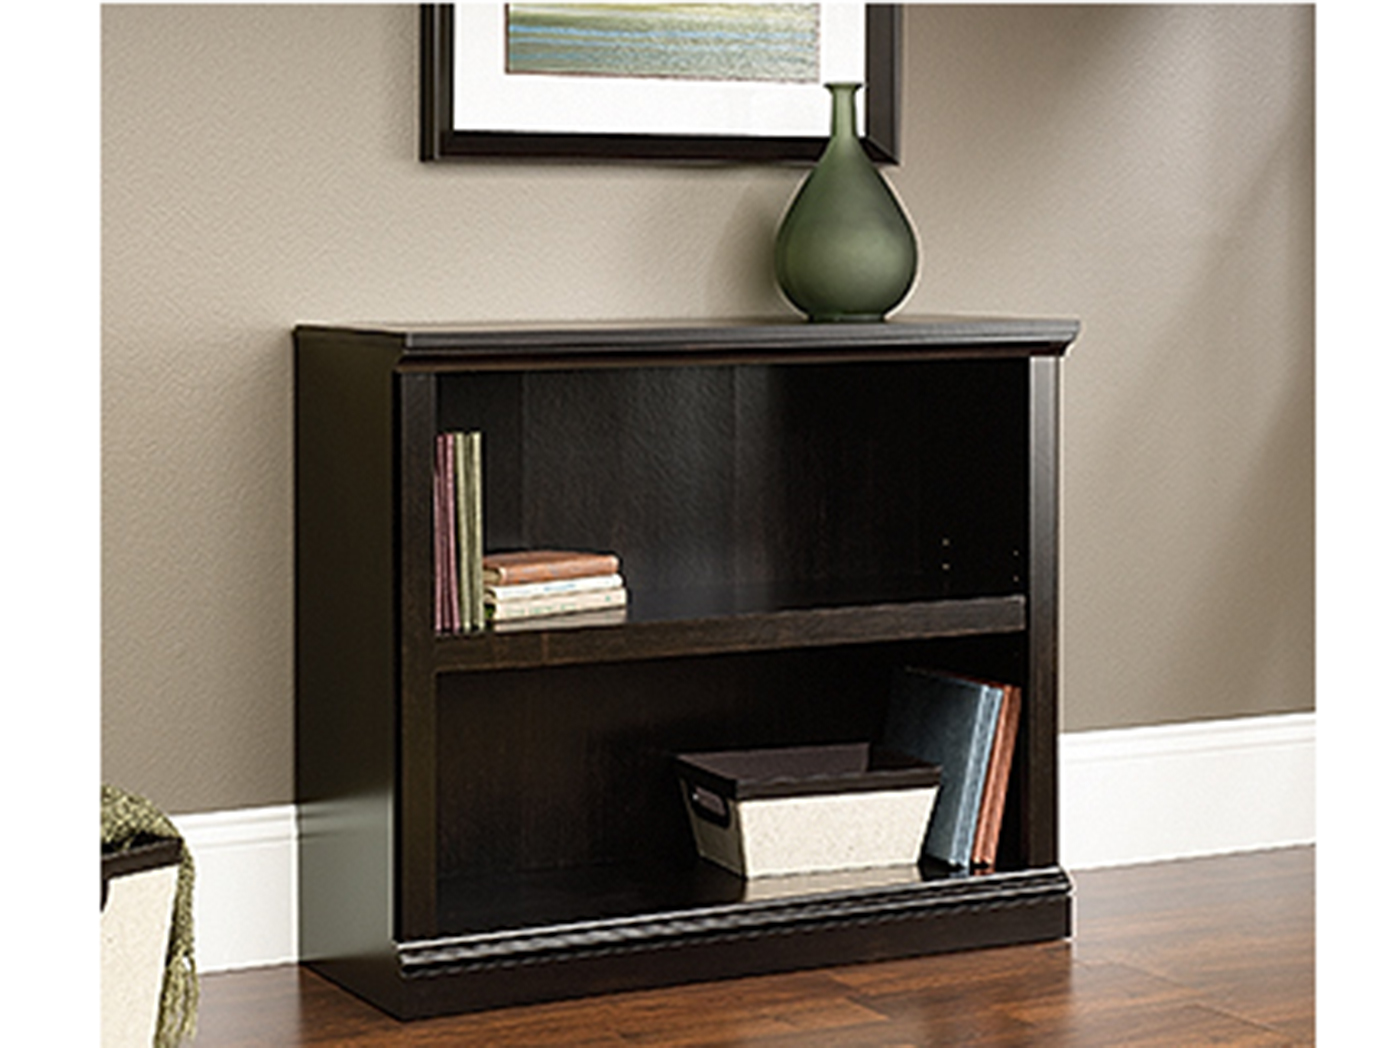 Select 2-Shelf Bookcase